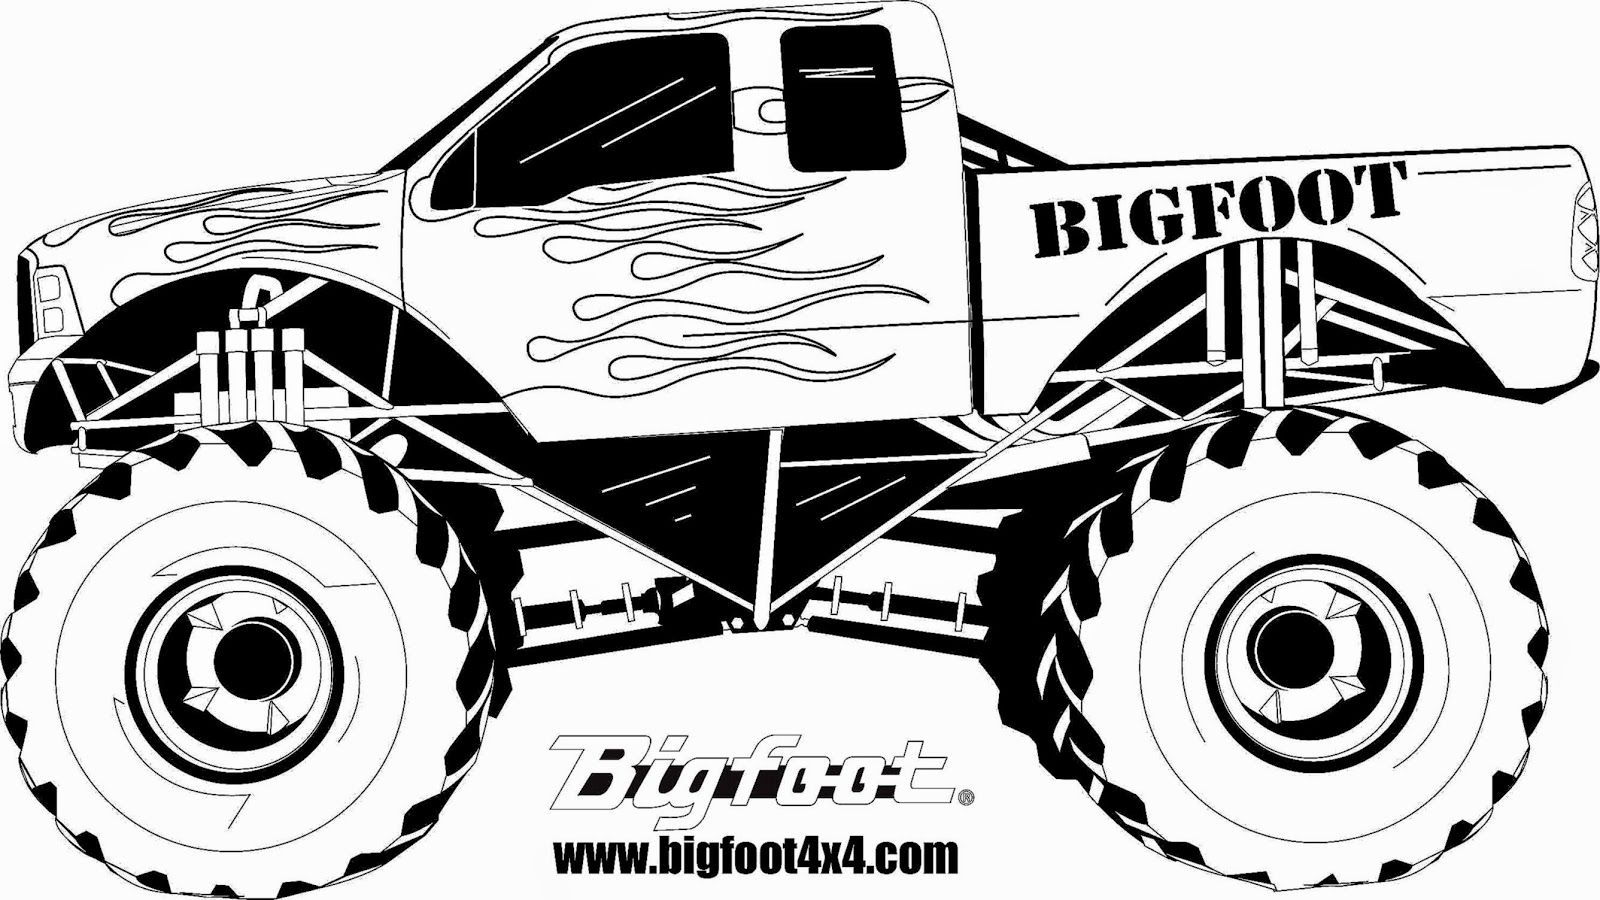 Adult Best Grave Digger Coloring Pages Gallery Images top 11 pics of monster jam grave digger coloring pages gallery images